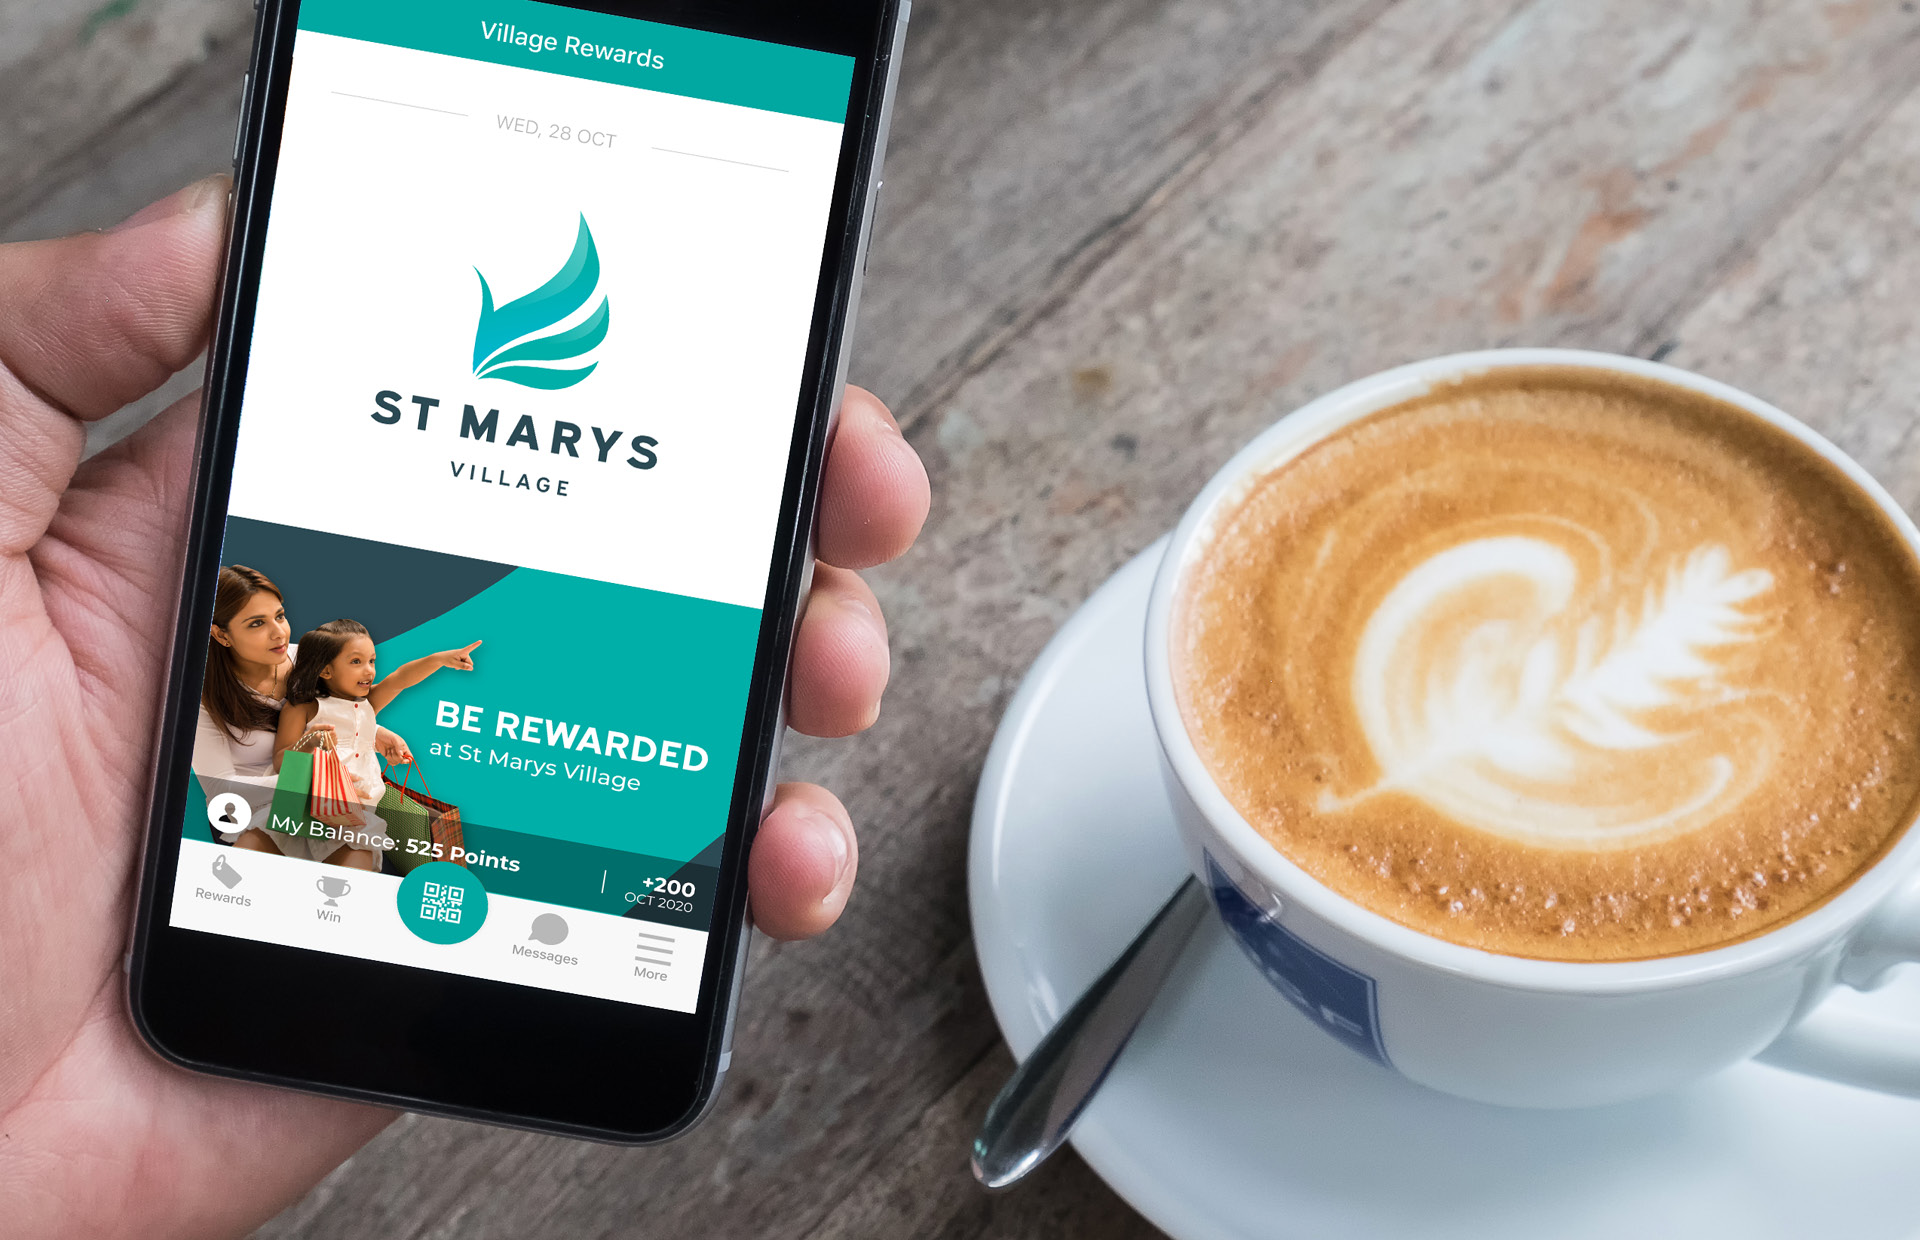 Be rewarded when you shop at St Marys Village